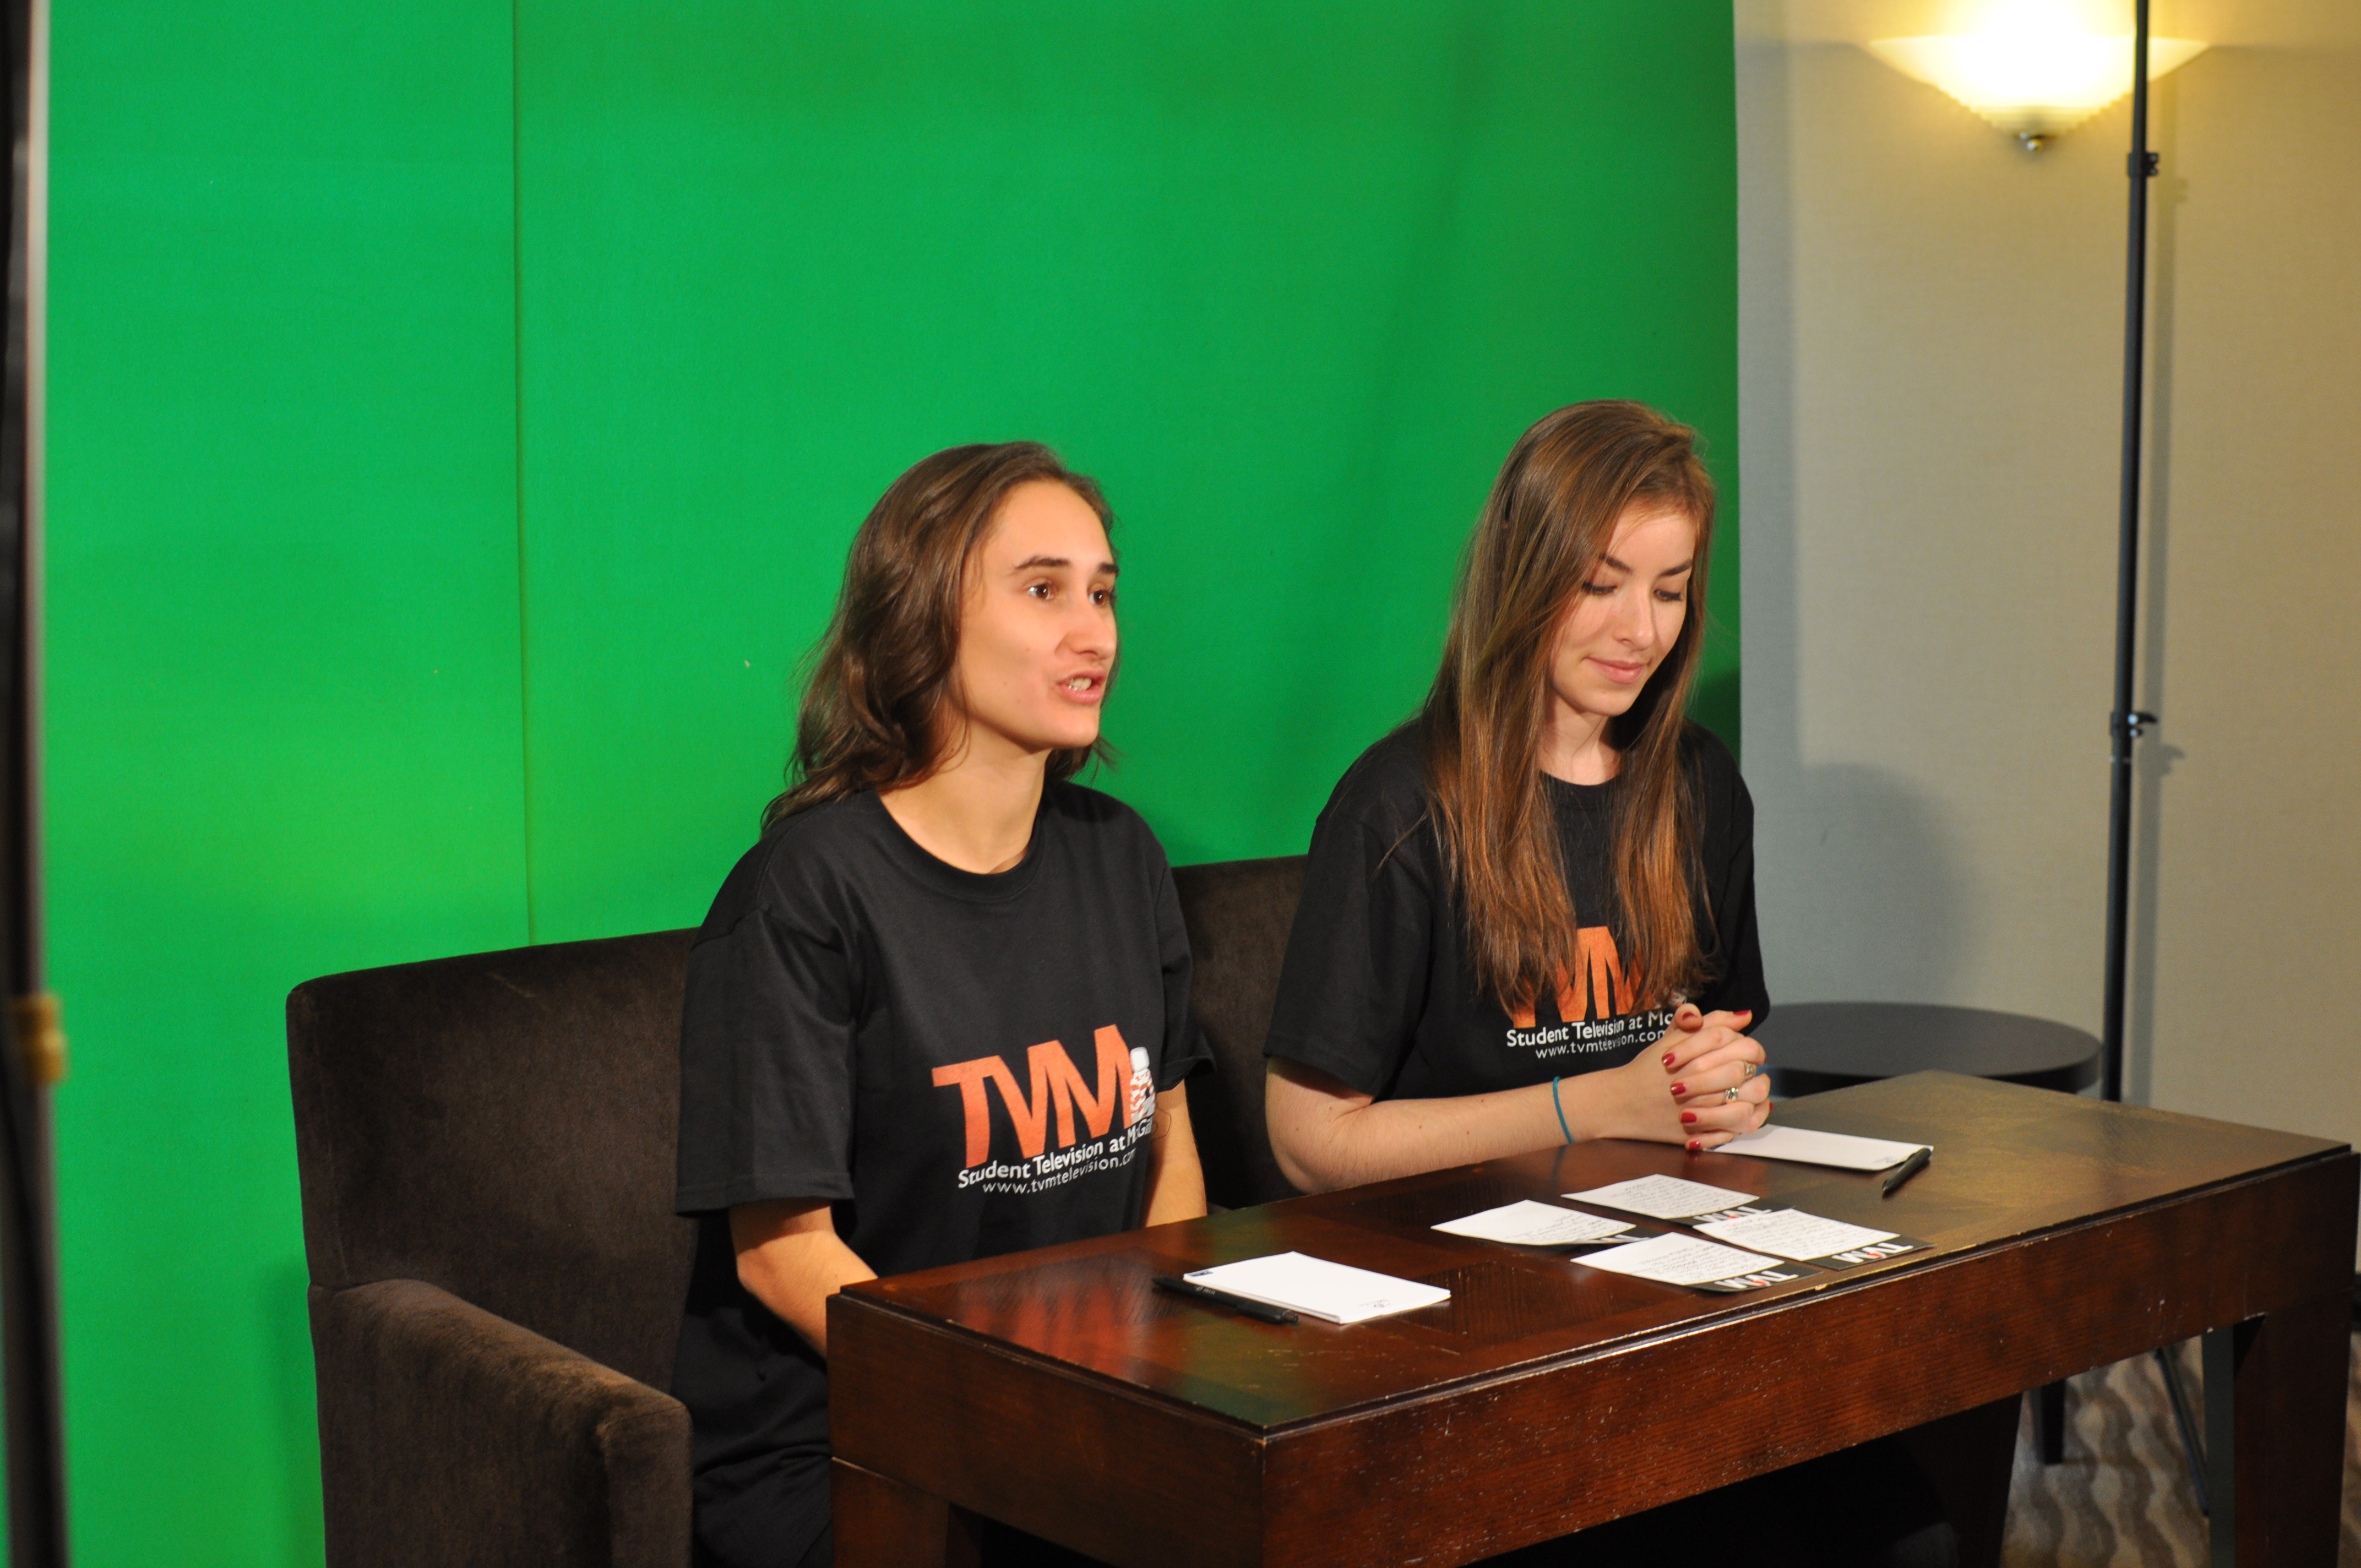 Tv Mcgill Uses A Green Screen To Film Its News Updates